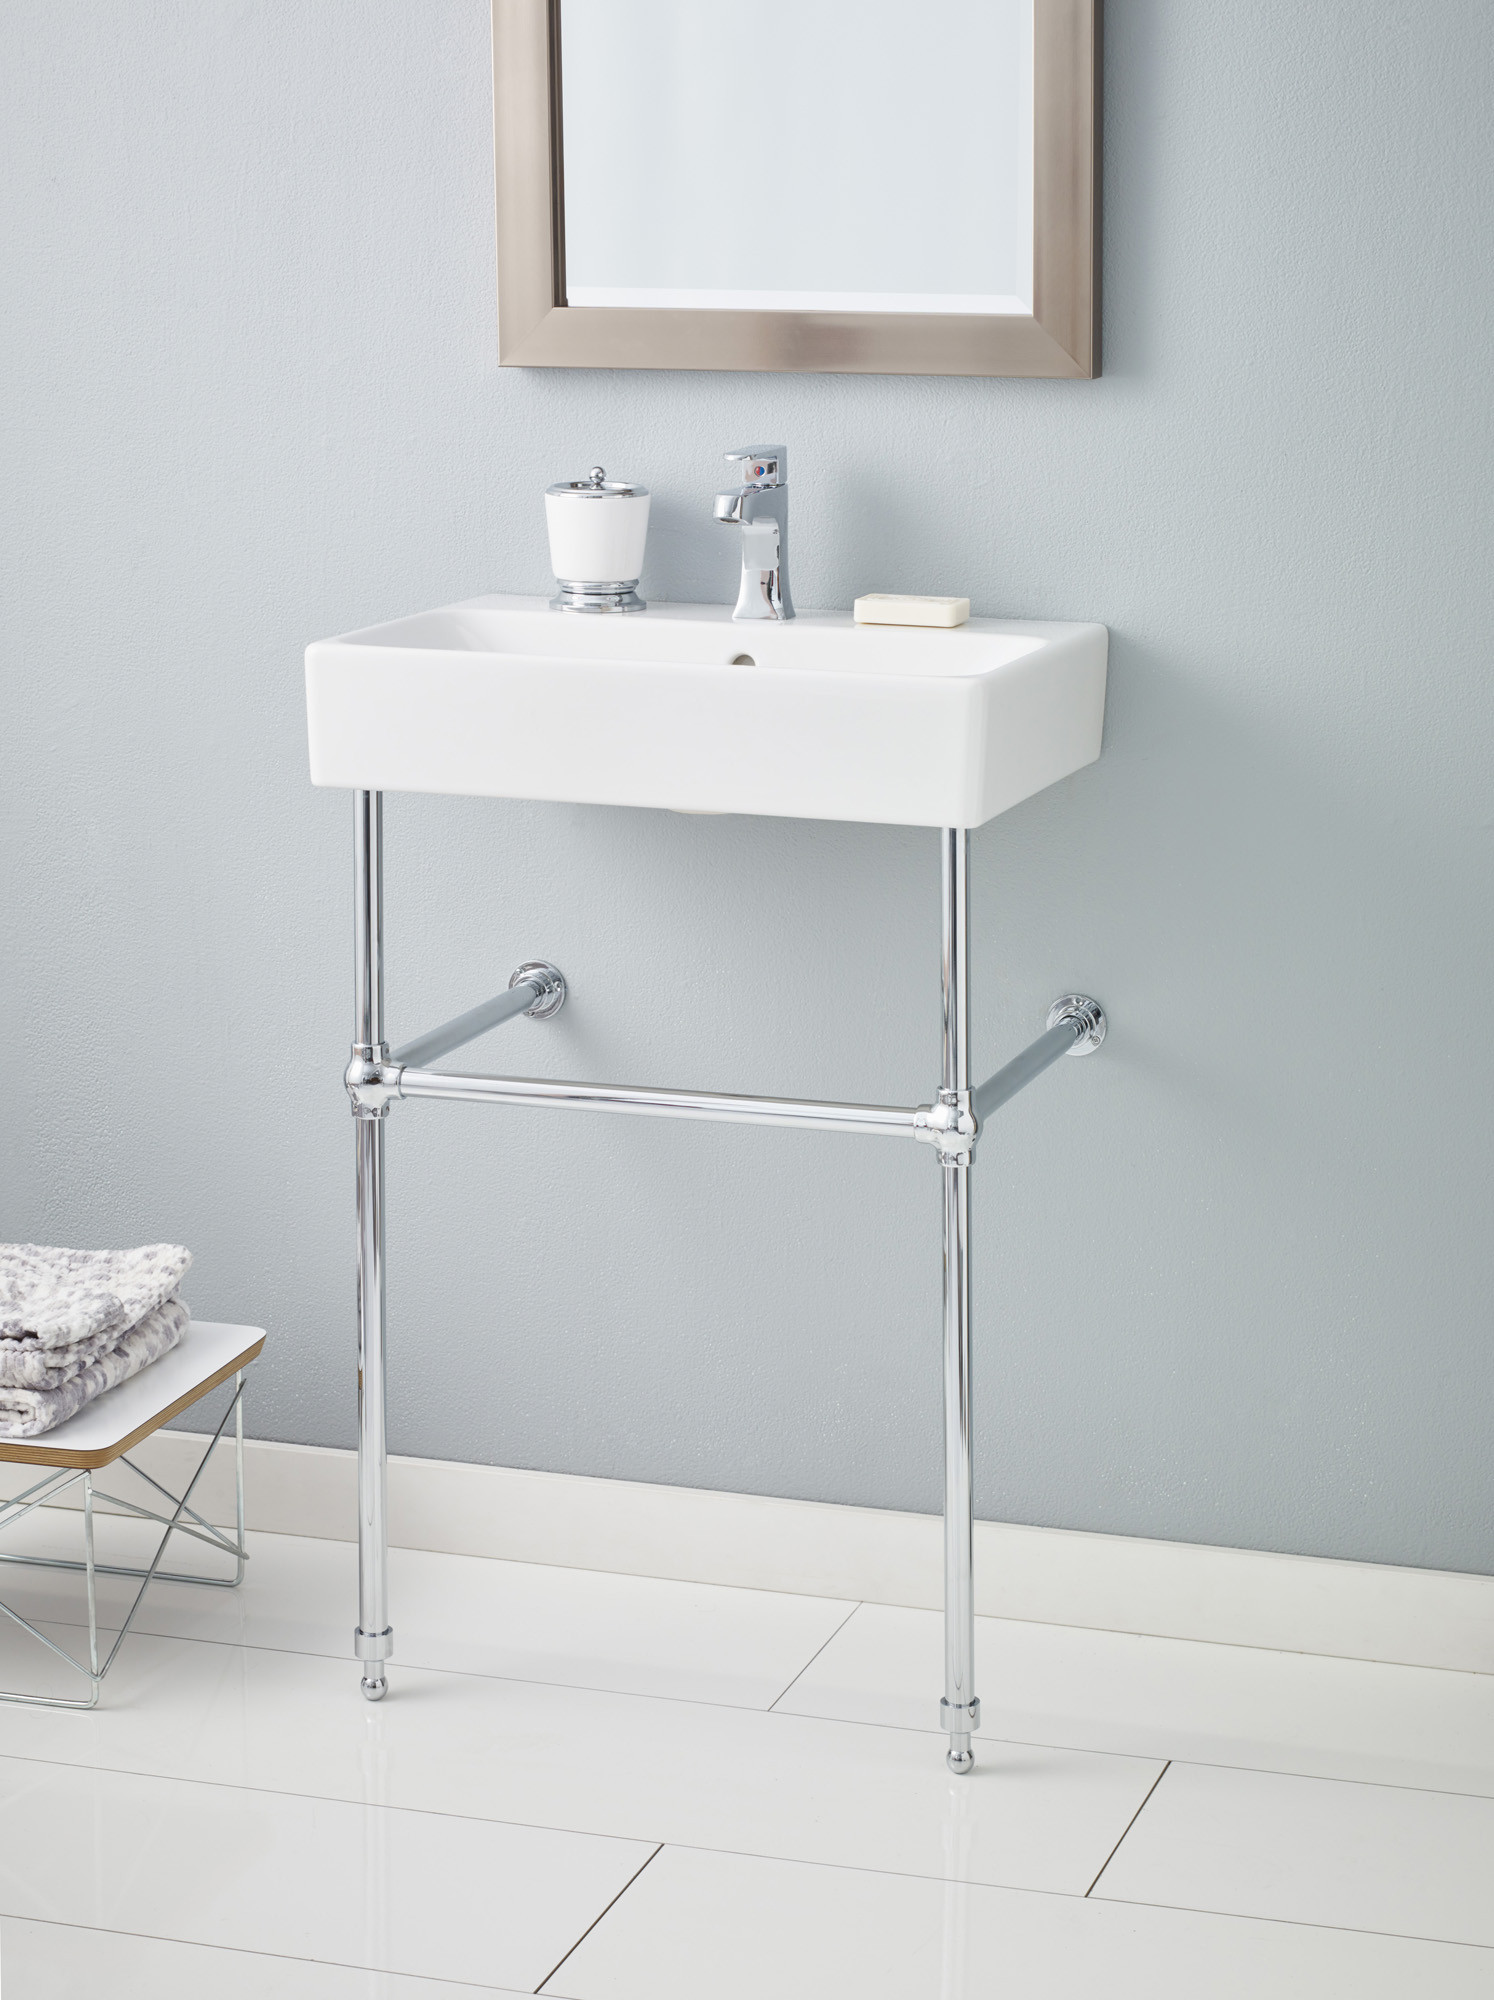 Cheviot 1234-WH-1-575-CH NUO Nuo Fireclay Lavatory Sink with Chrome Console